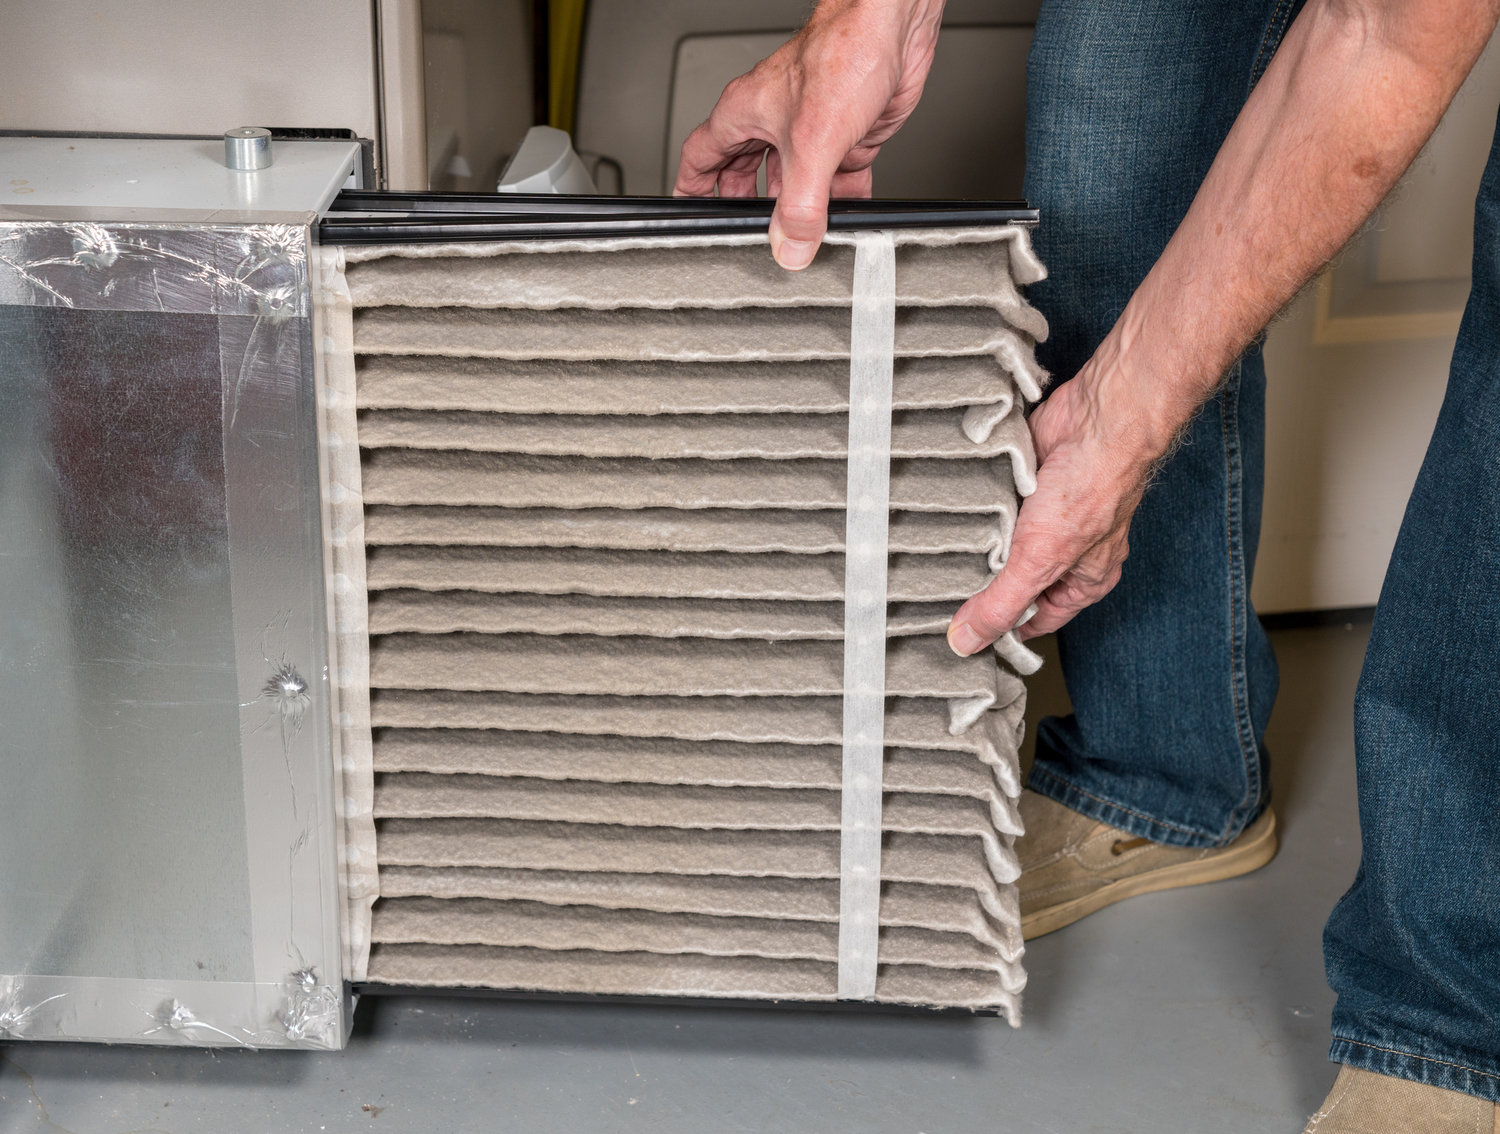 Cheap Air Filters >> Why Cheap Air Filters Won T Do The Job If You Have Pets 4 Seasons